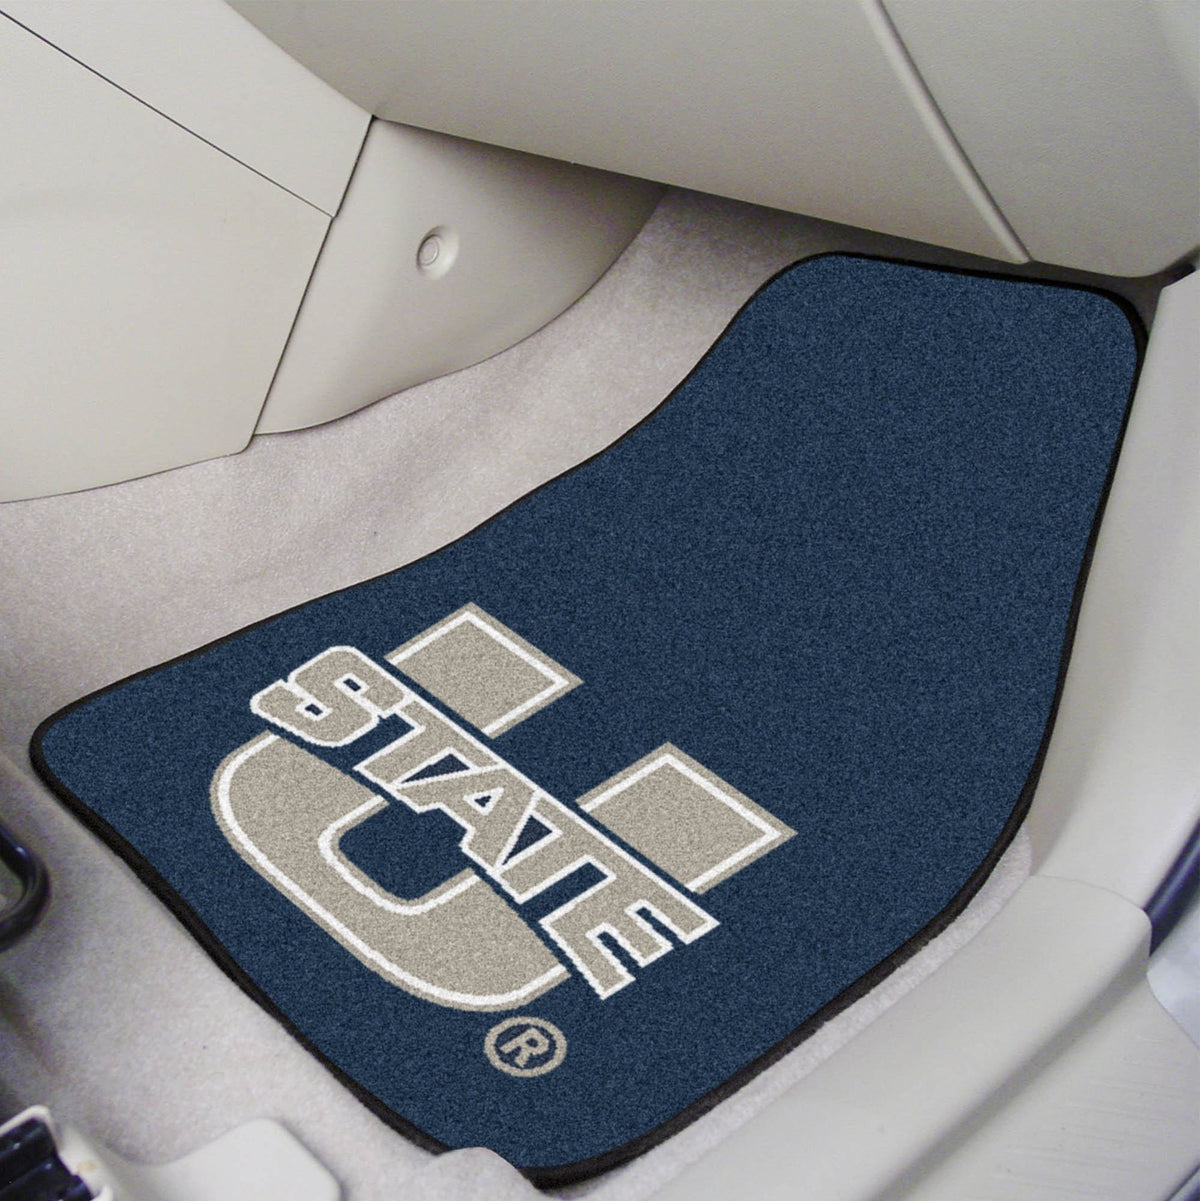 Collegiate - Carpet Car Mat, 2-Piece Set: T - Z Collegiate Car Mat, Front Car Mats, 2-pc Carpet Car Mat Set, Collegiate, Auto Fan Mats Utah State